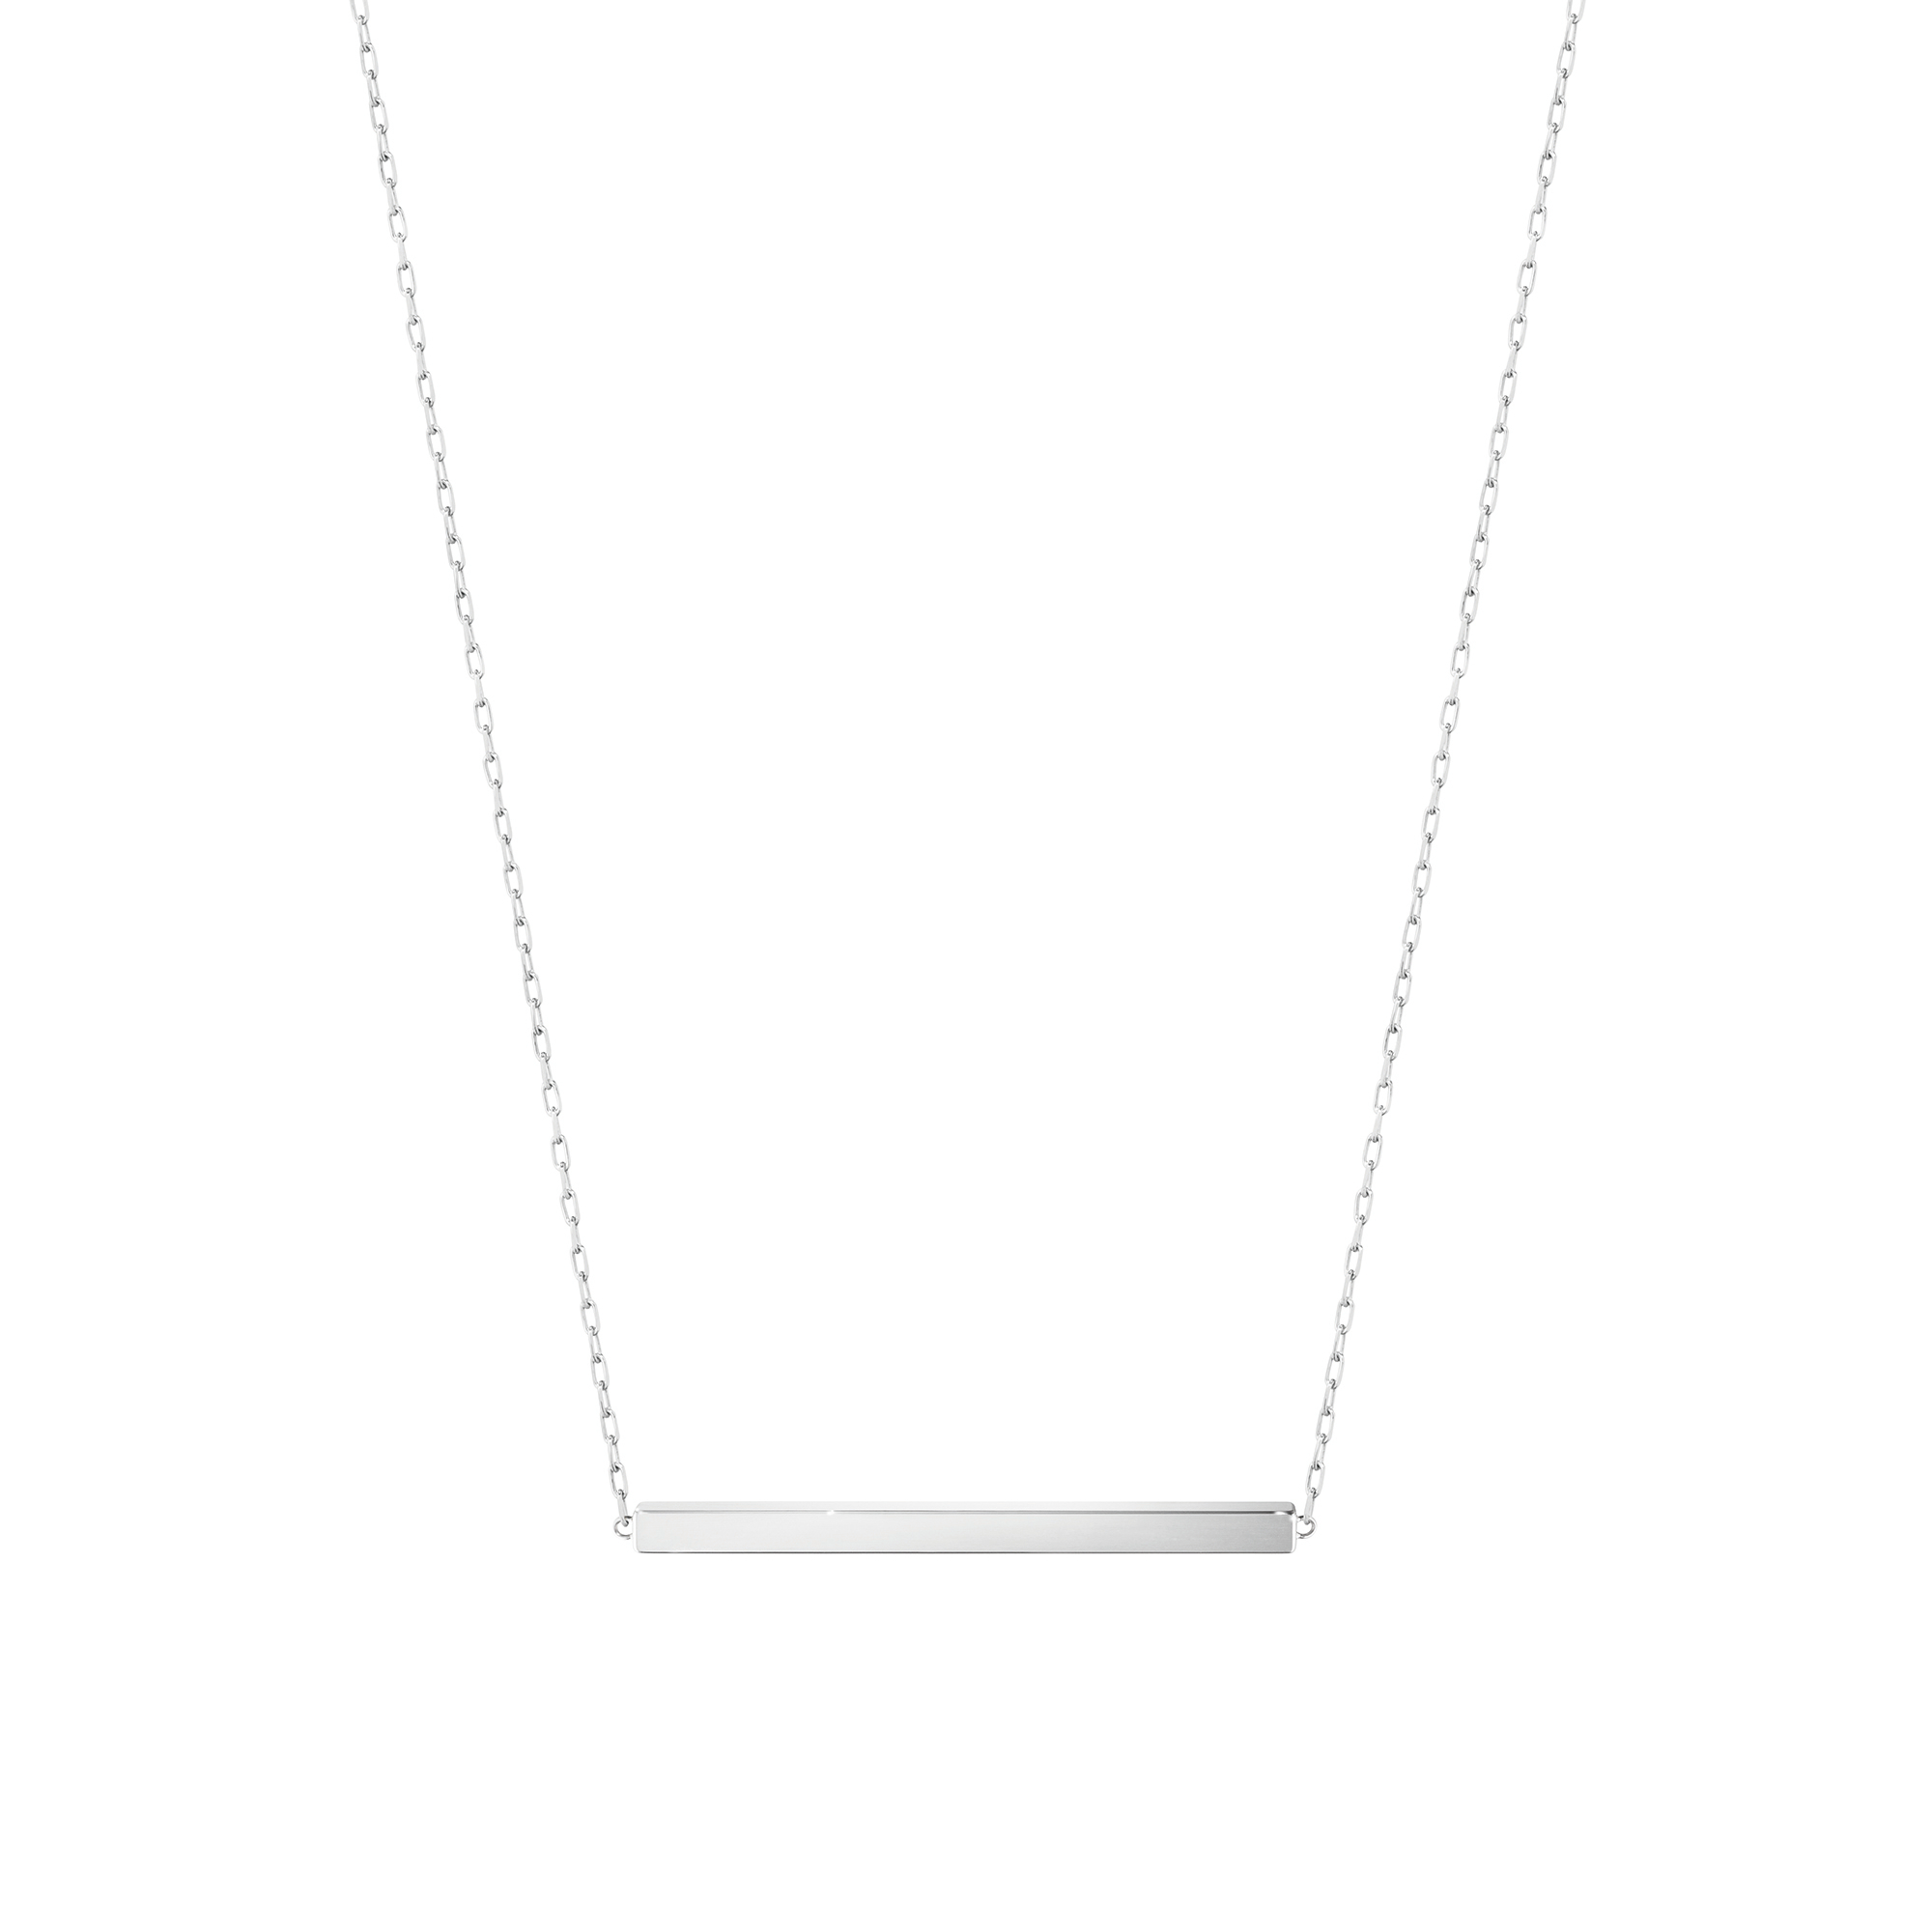 Georg Jensen Sterling Silver Aria Horizontal Bar Necklace